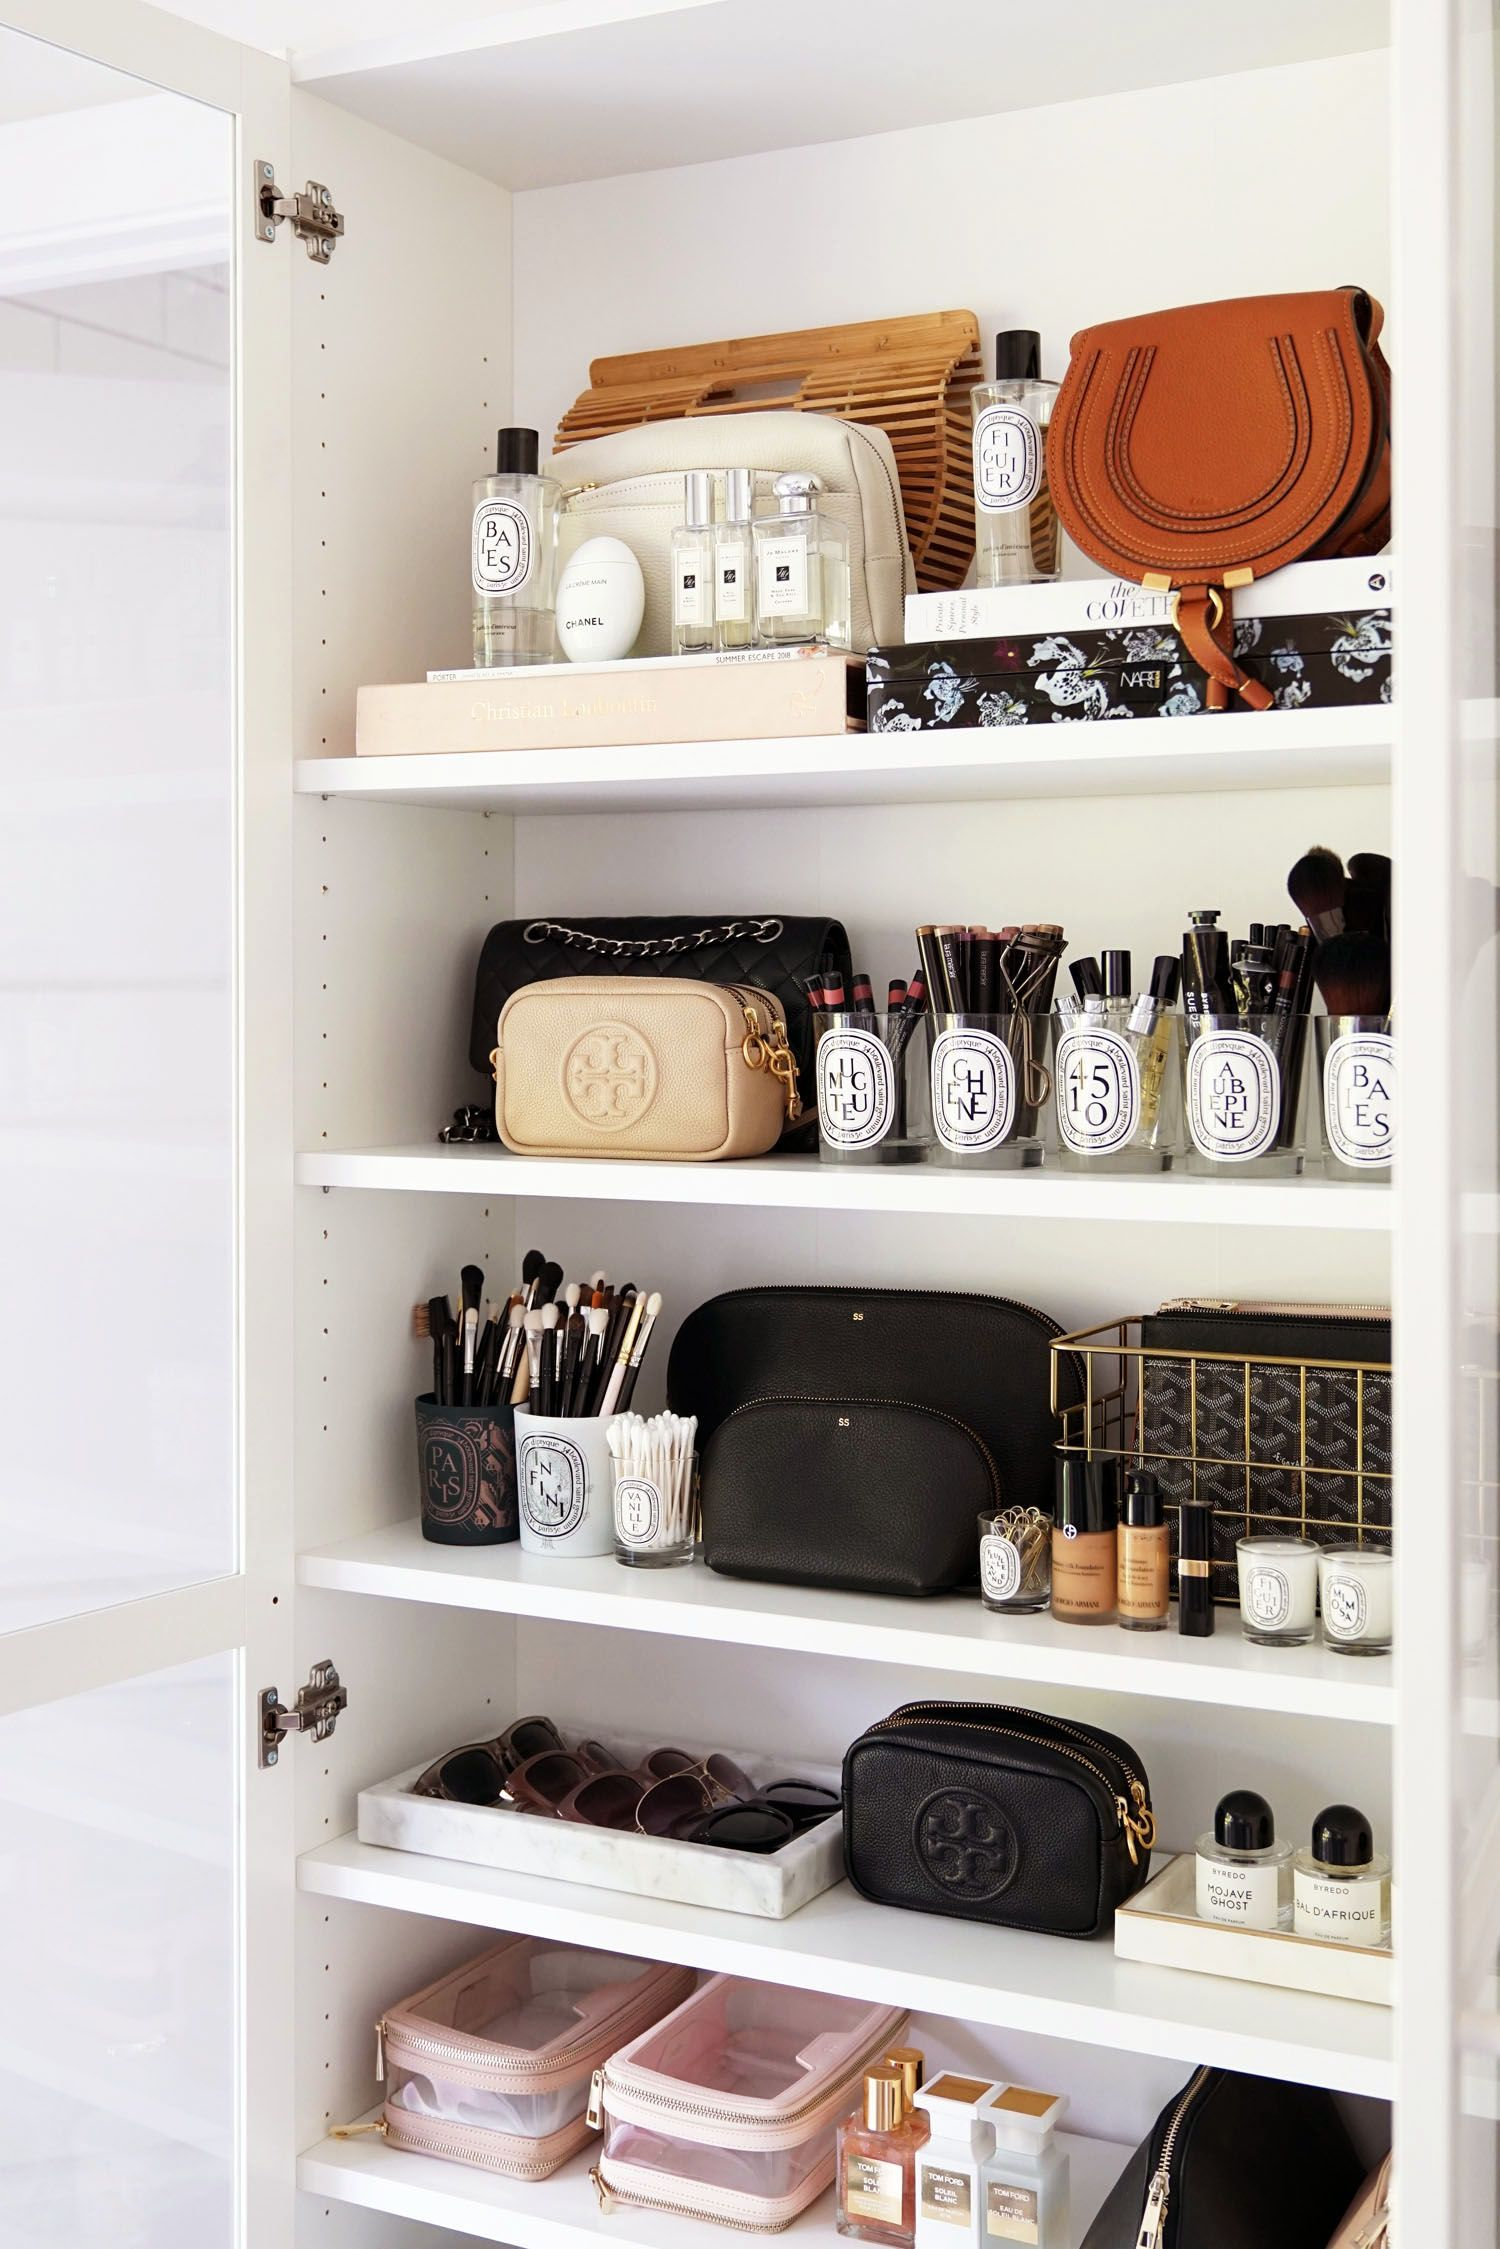 Diy Fall Home Decor Cleaning Faqs Recycling Diptyque Jars Favorite Brush Cleansers Clear Bag In 2020 Badezimmer Schrank Organisation Diy Mobel Design Dekor Zimmer